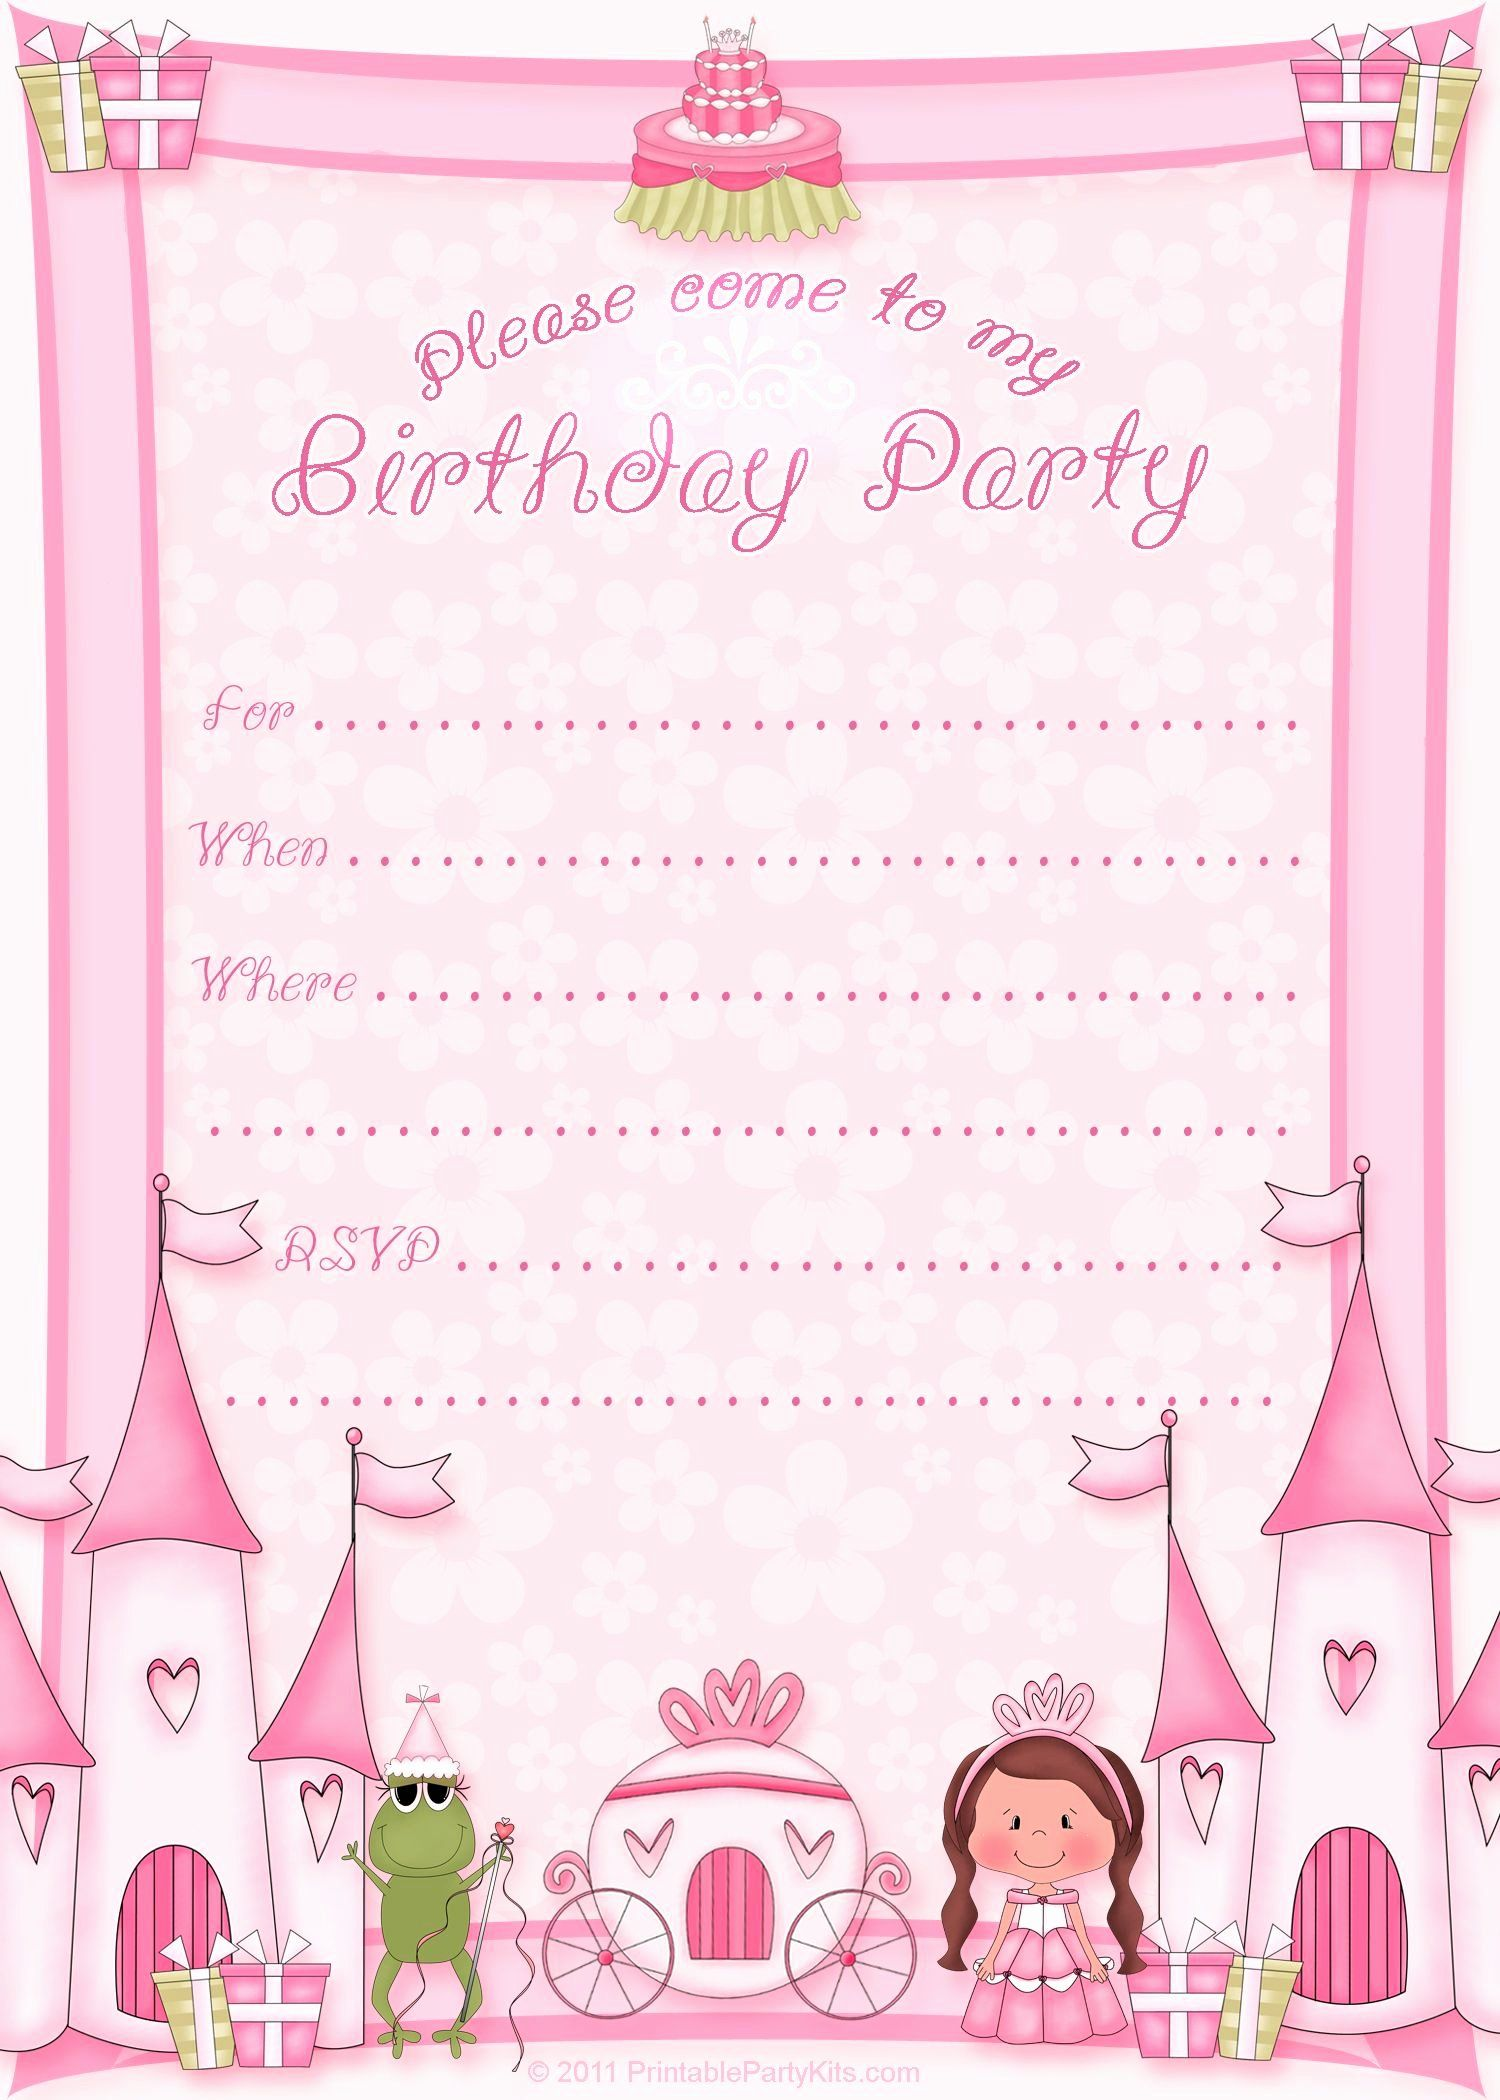 Princess Birthday Party Invitations Awesome Free Printabl Birthday Invitation Card Template Free Birthday Invitation Templates Free Printable Party Invitations